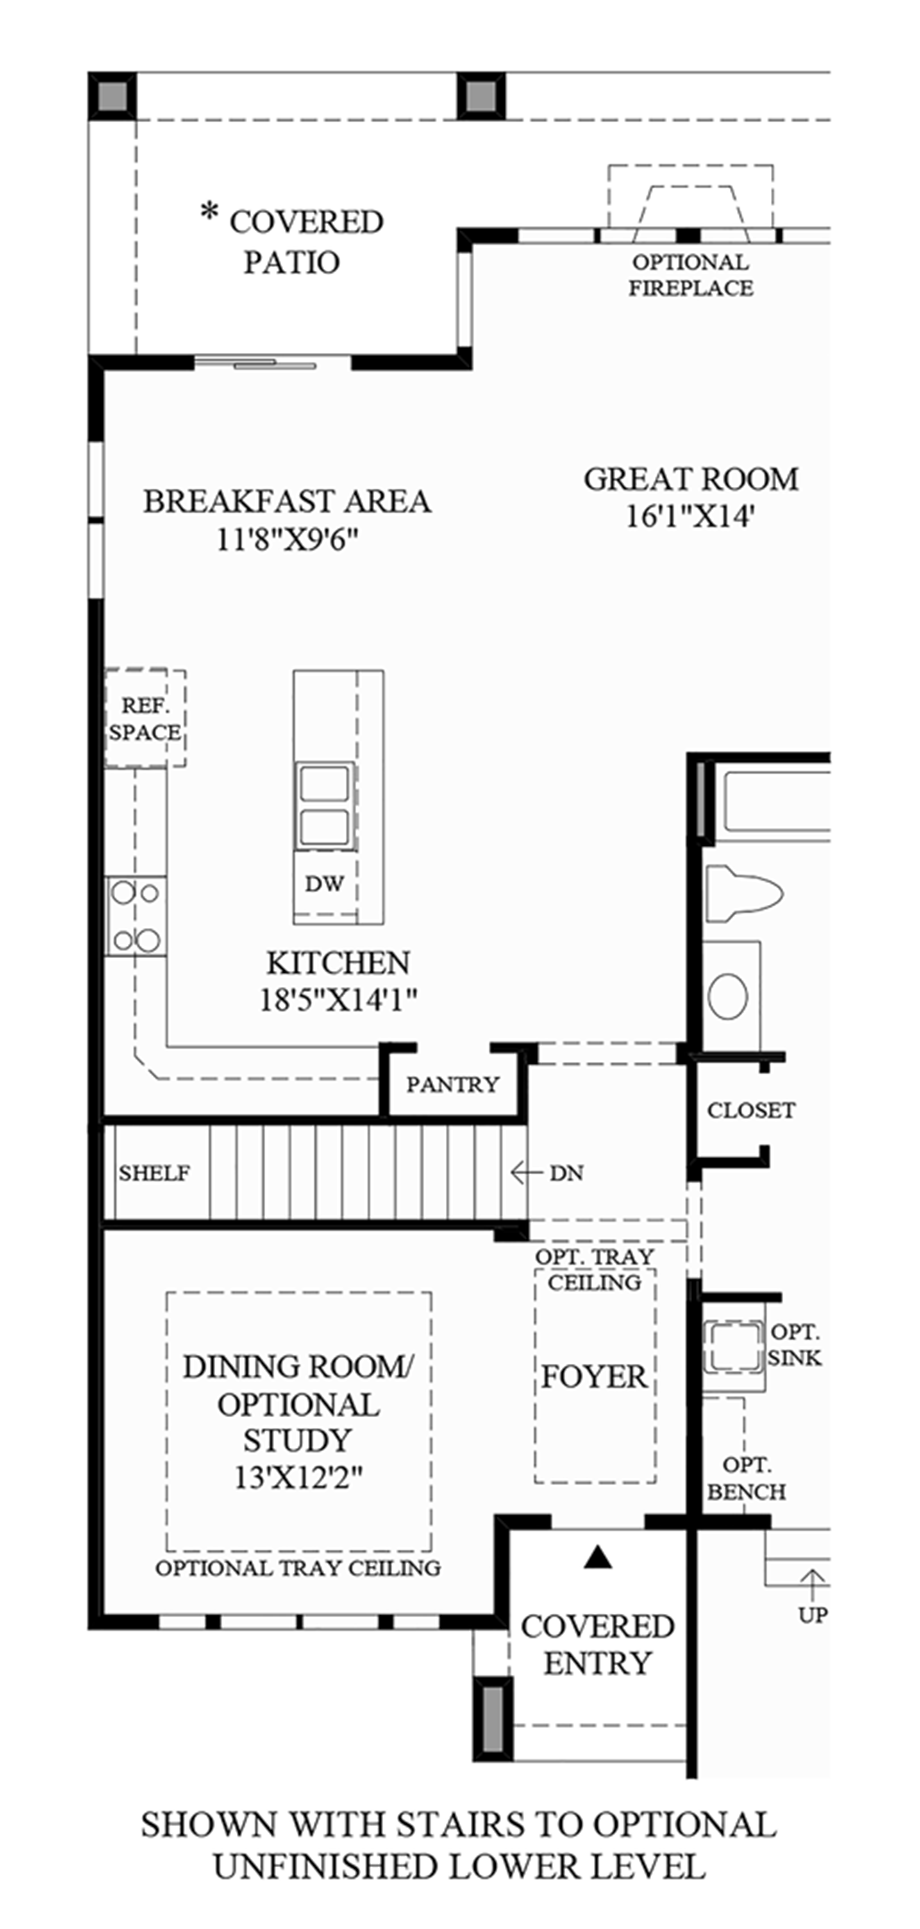 Stairs to Optional Unfinished Lower Level Floor Plan